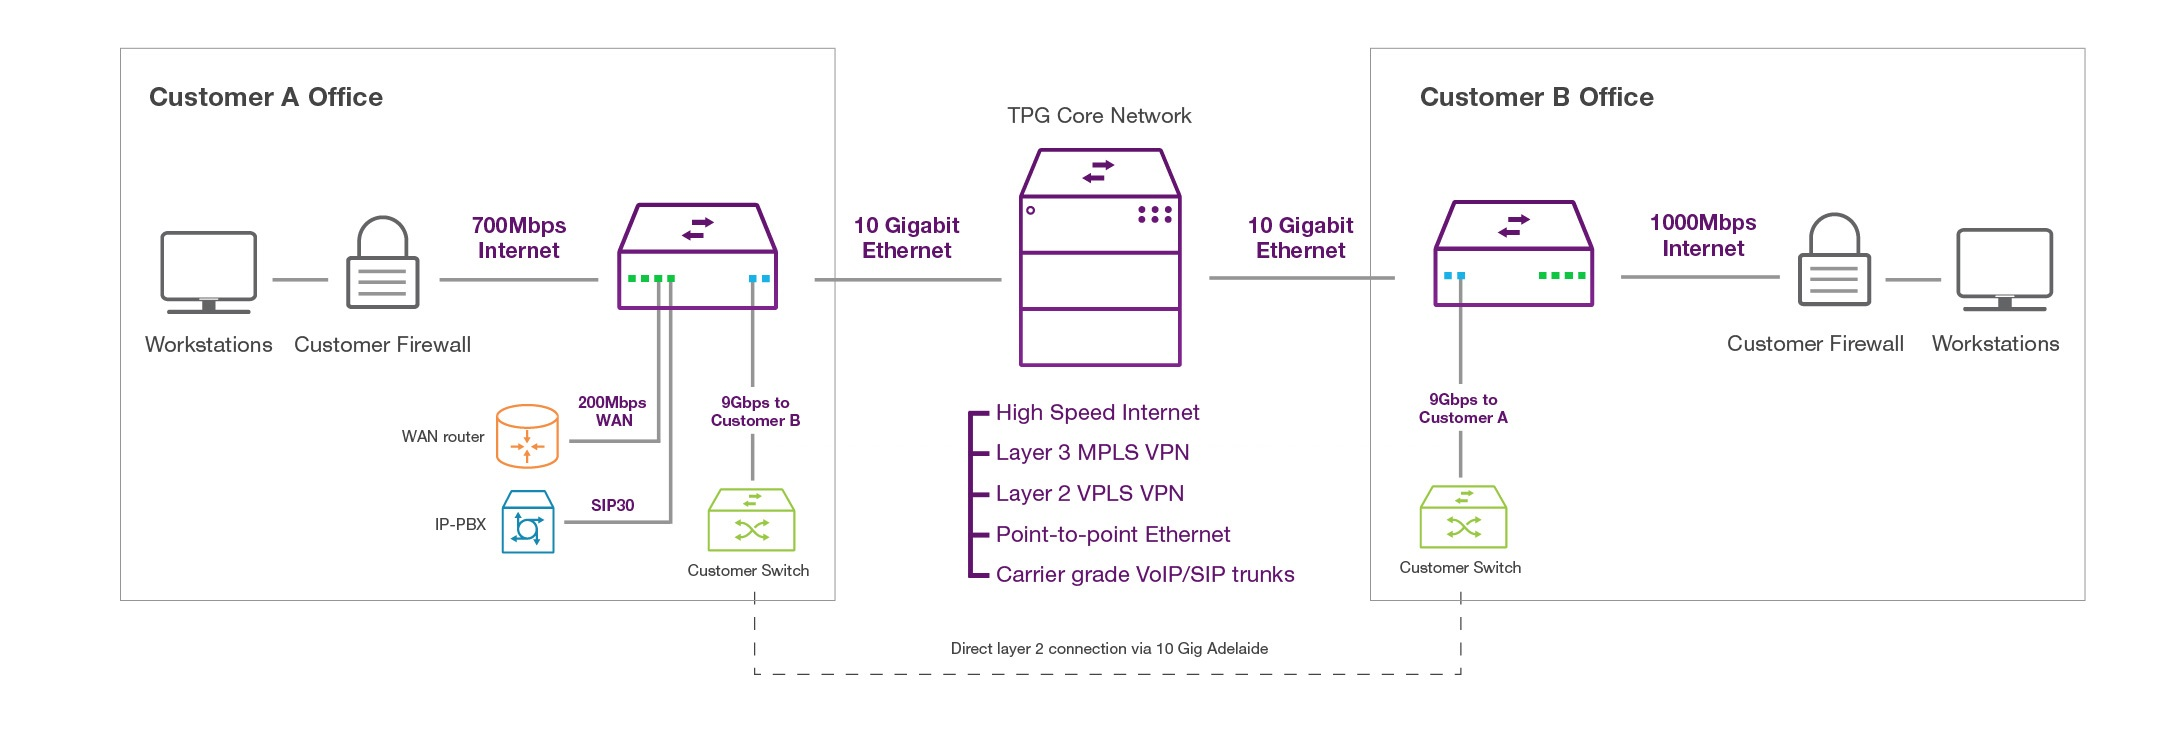 10Gbps business to business connectivity